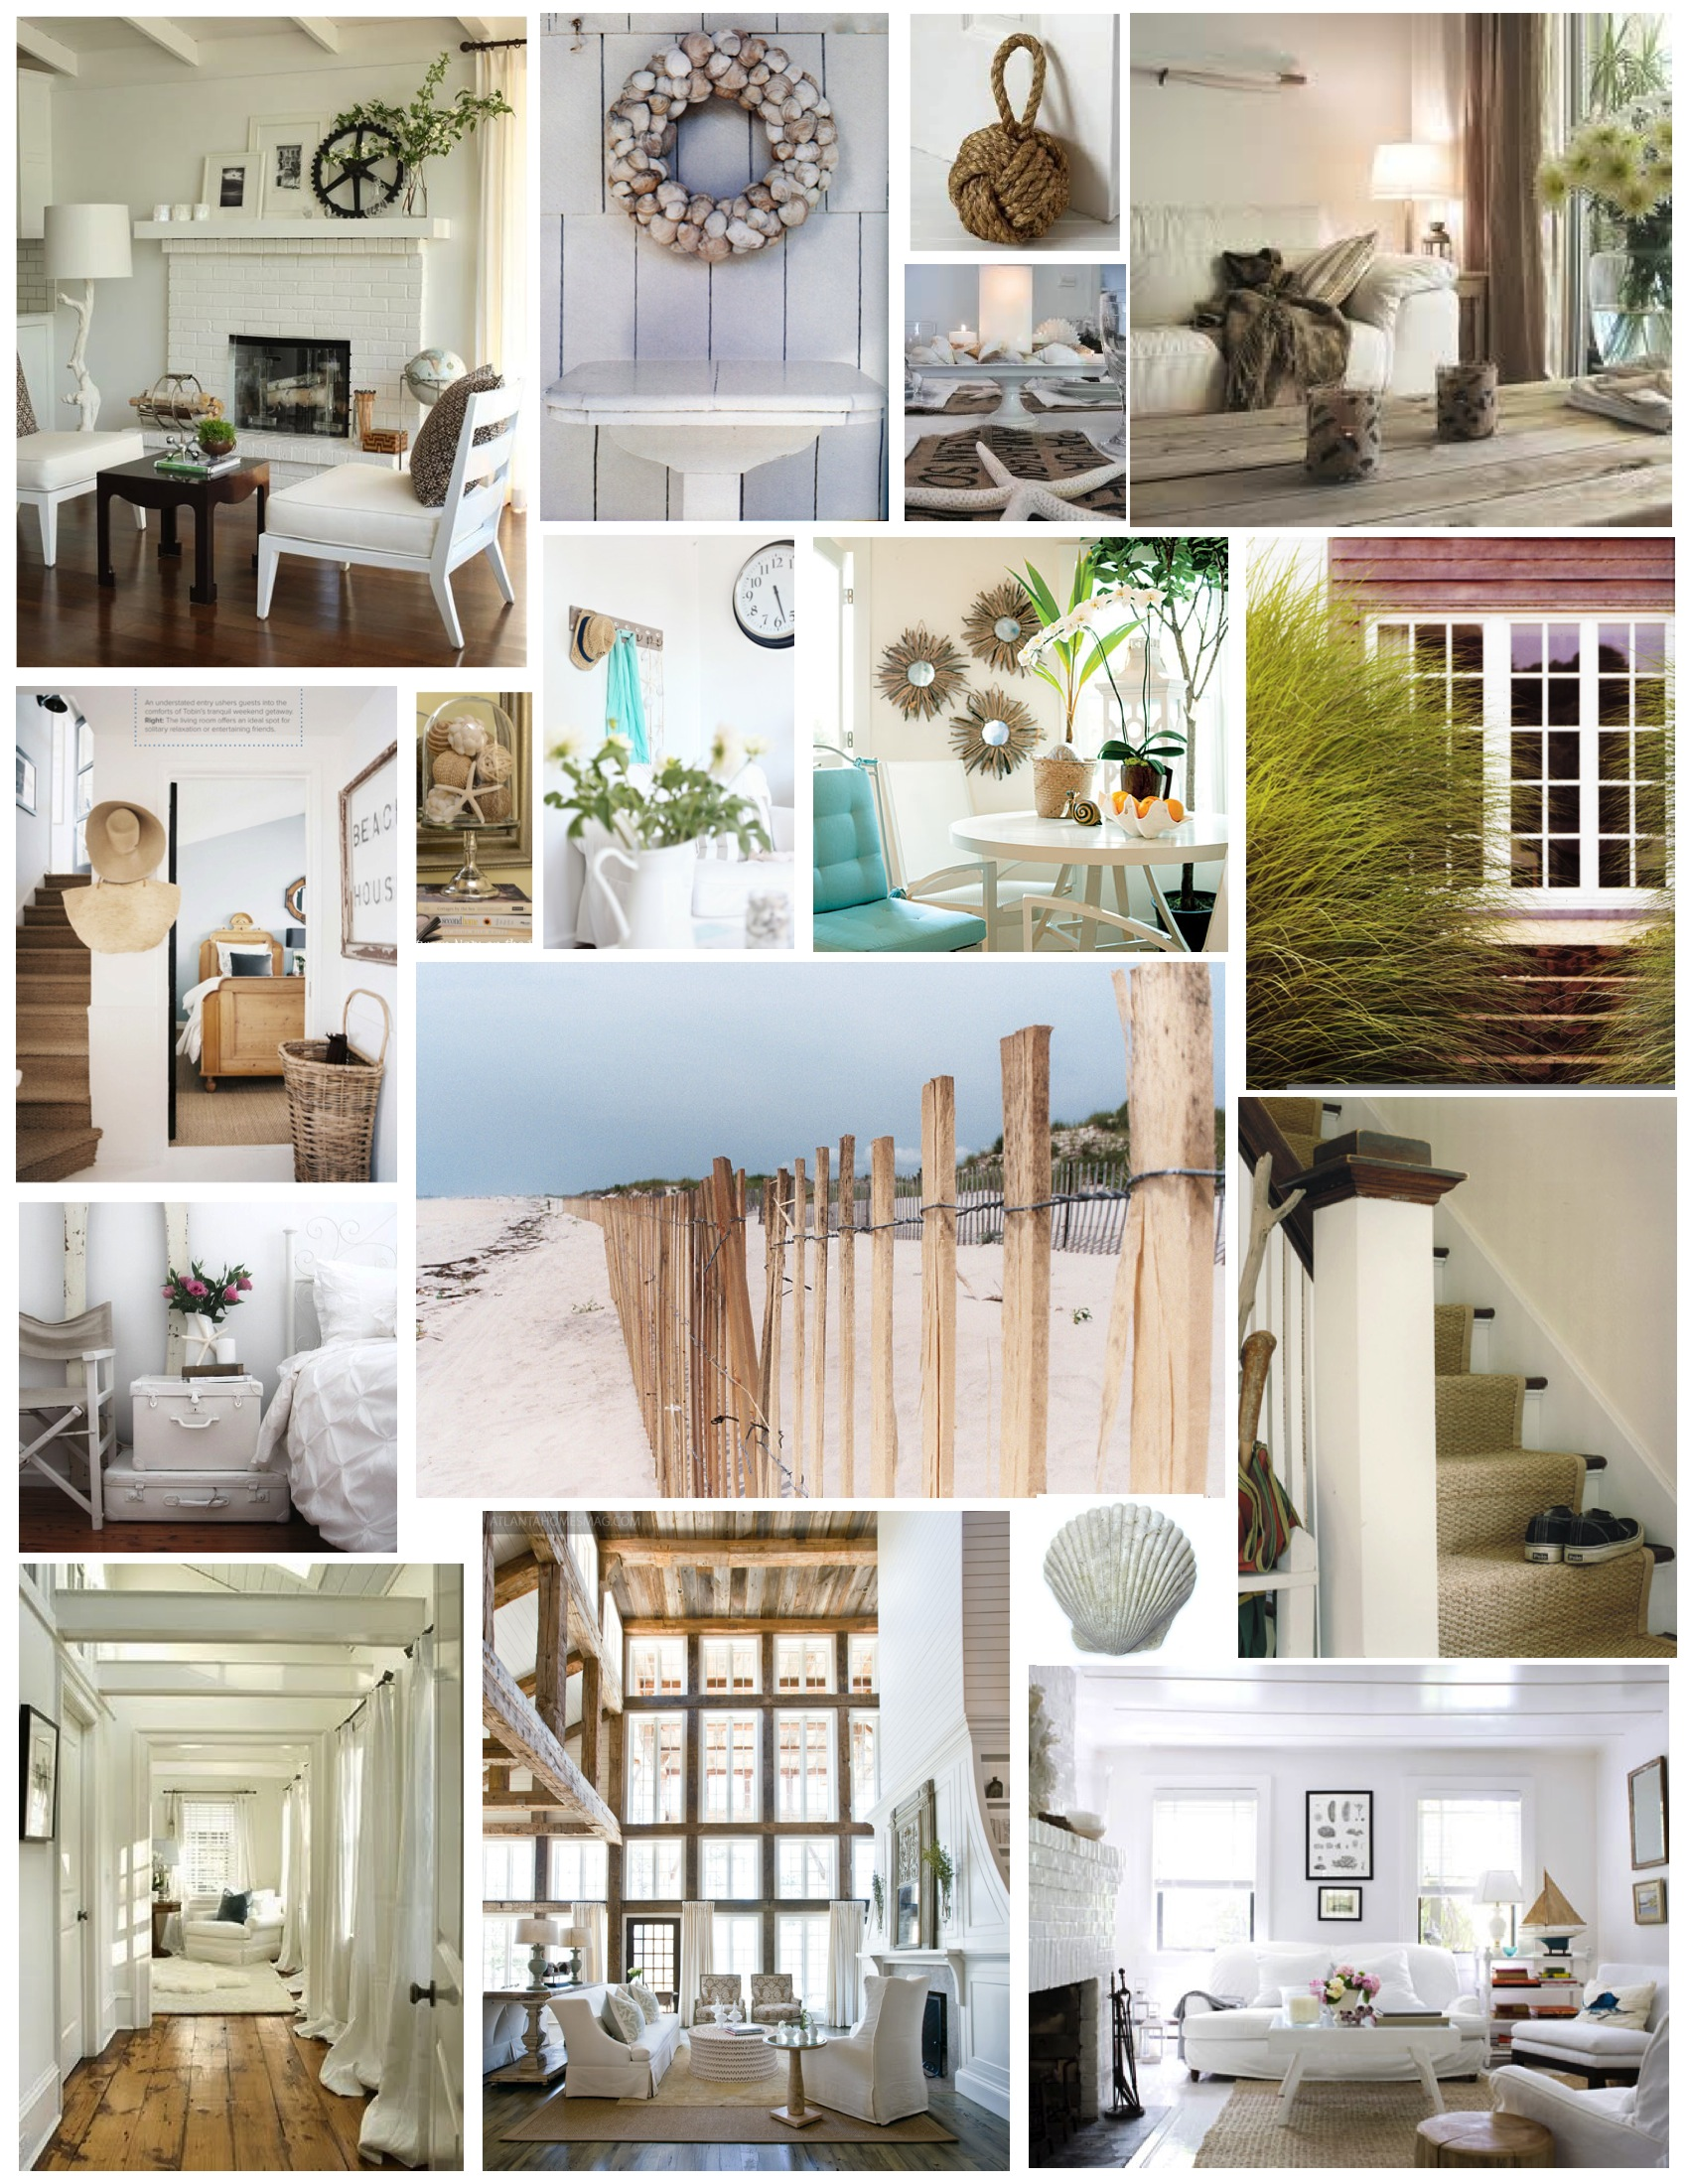 Beach house style inspirations house appeal for Beach house style